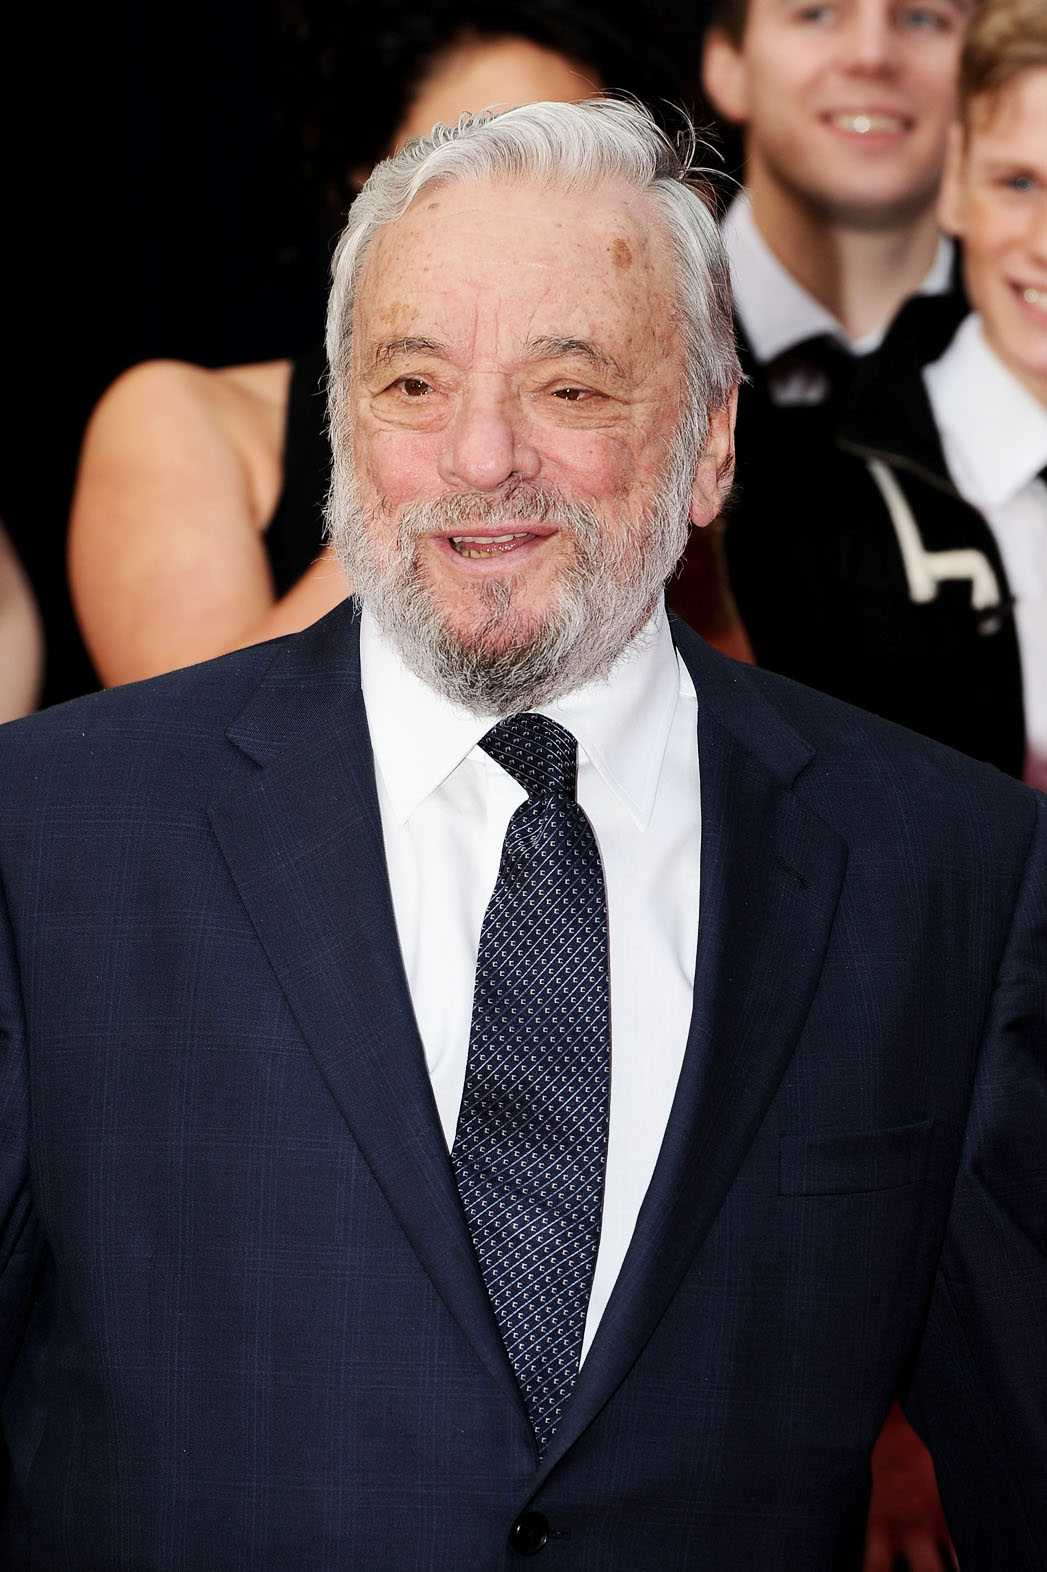 Stephen Sondheim To Revive Company, But With A Twist